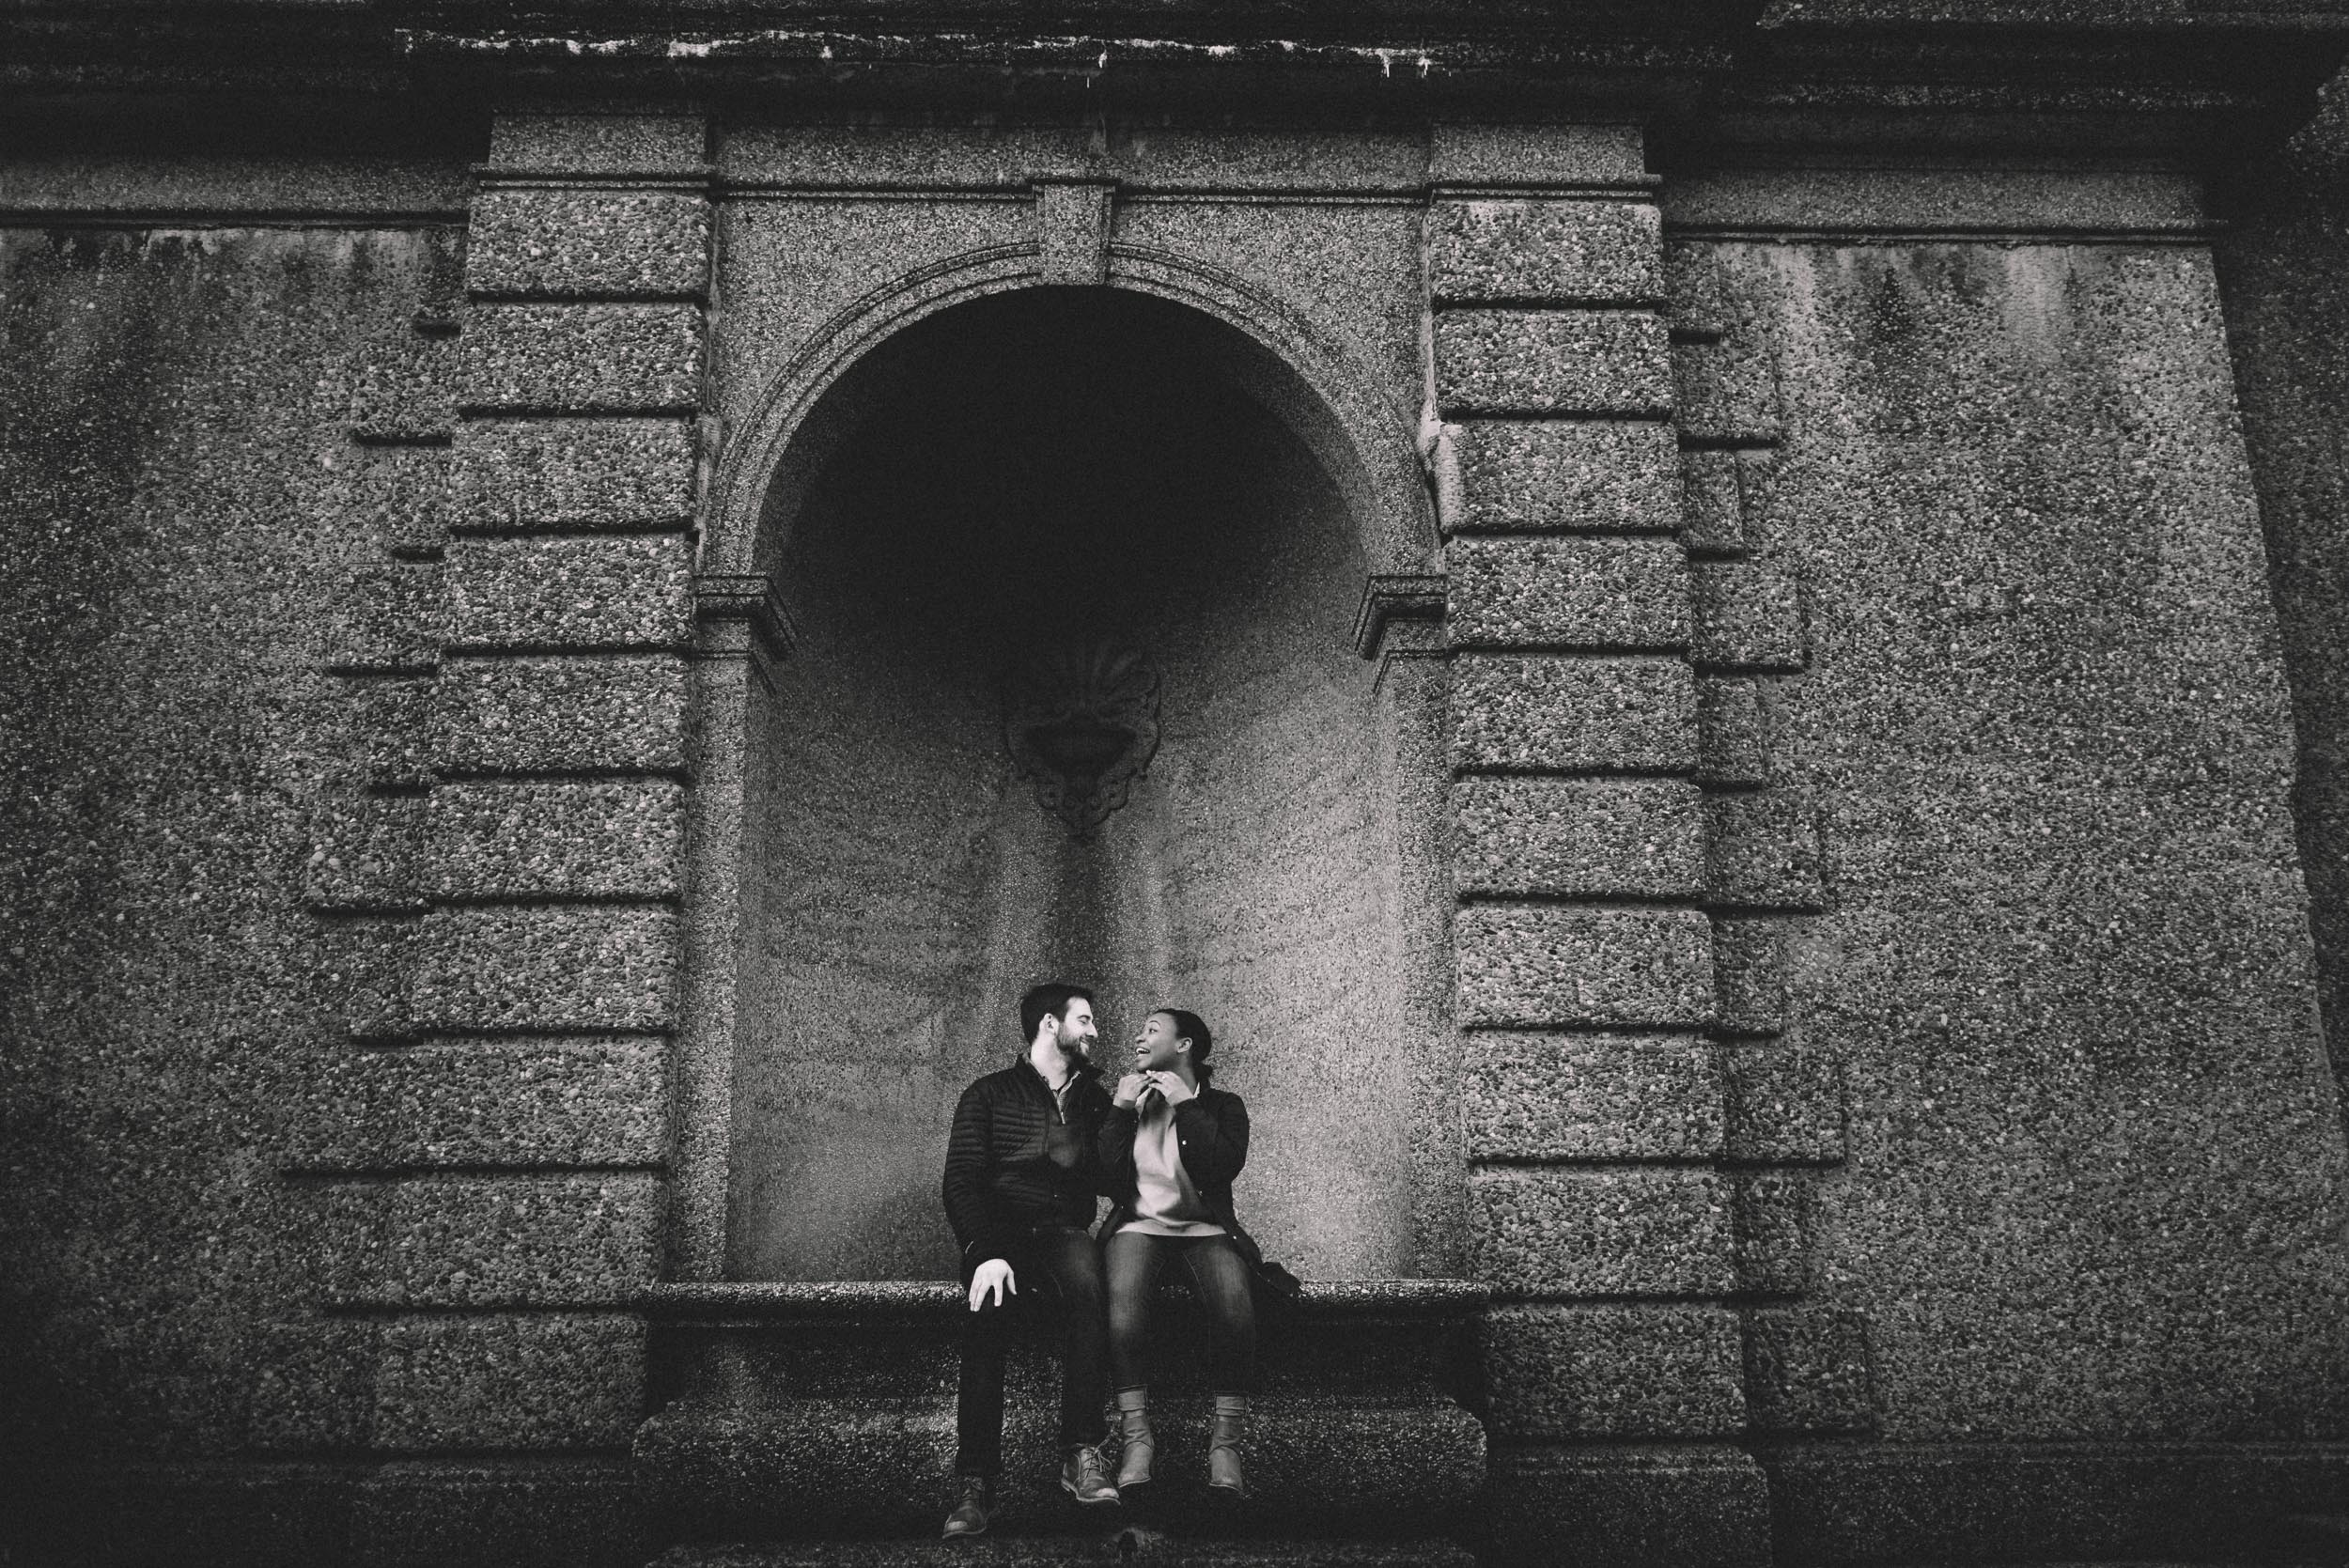 meridian-hill-park-engagement-18.jpg